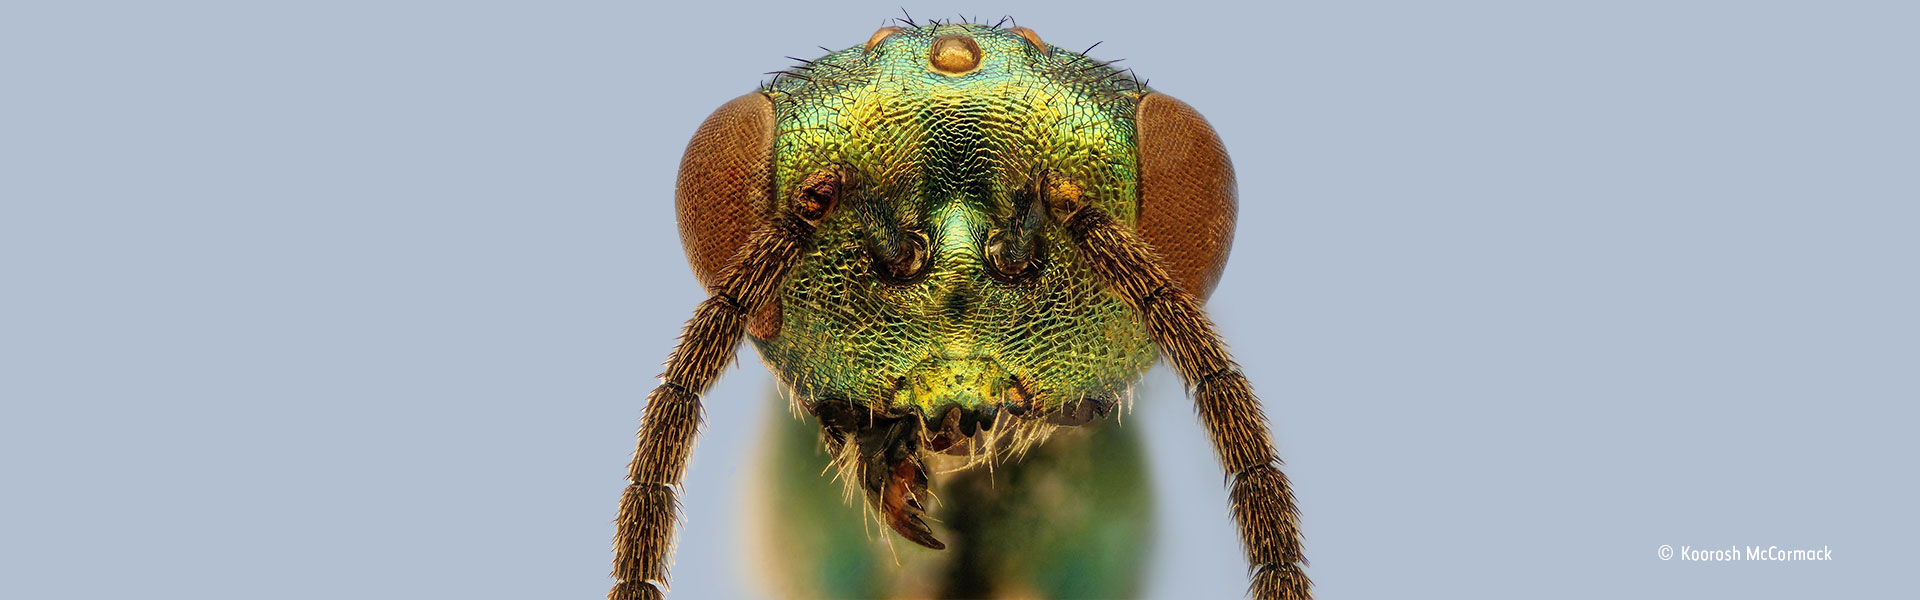 Close-up of a parasitoid wasp